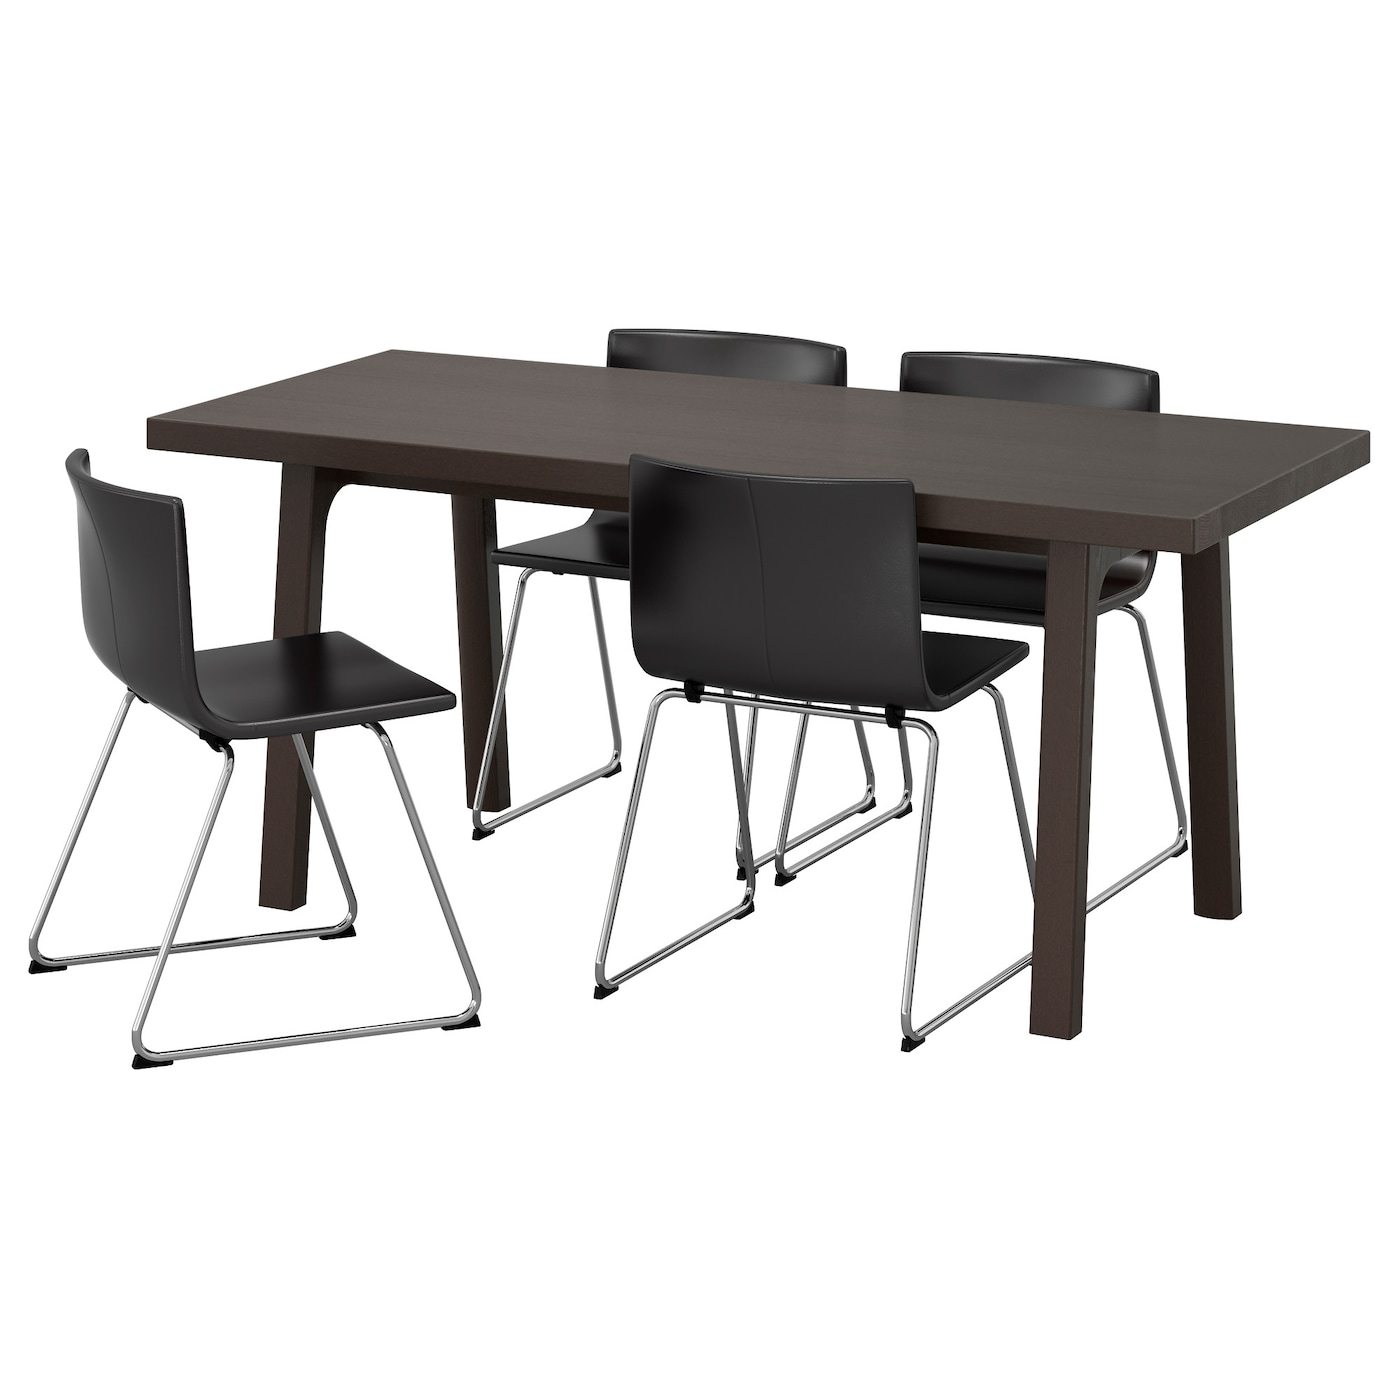 Bernhard V Stanby V Stan Table And 4 Chairs Dark Brown